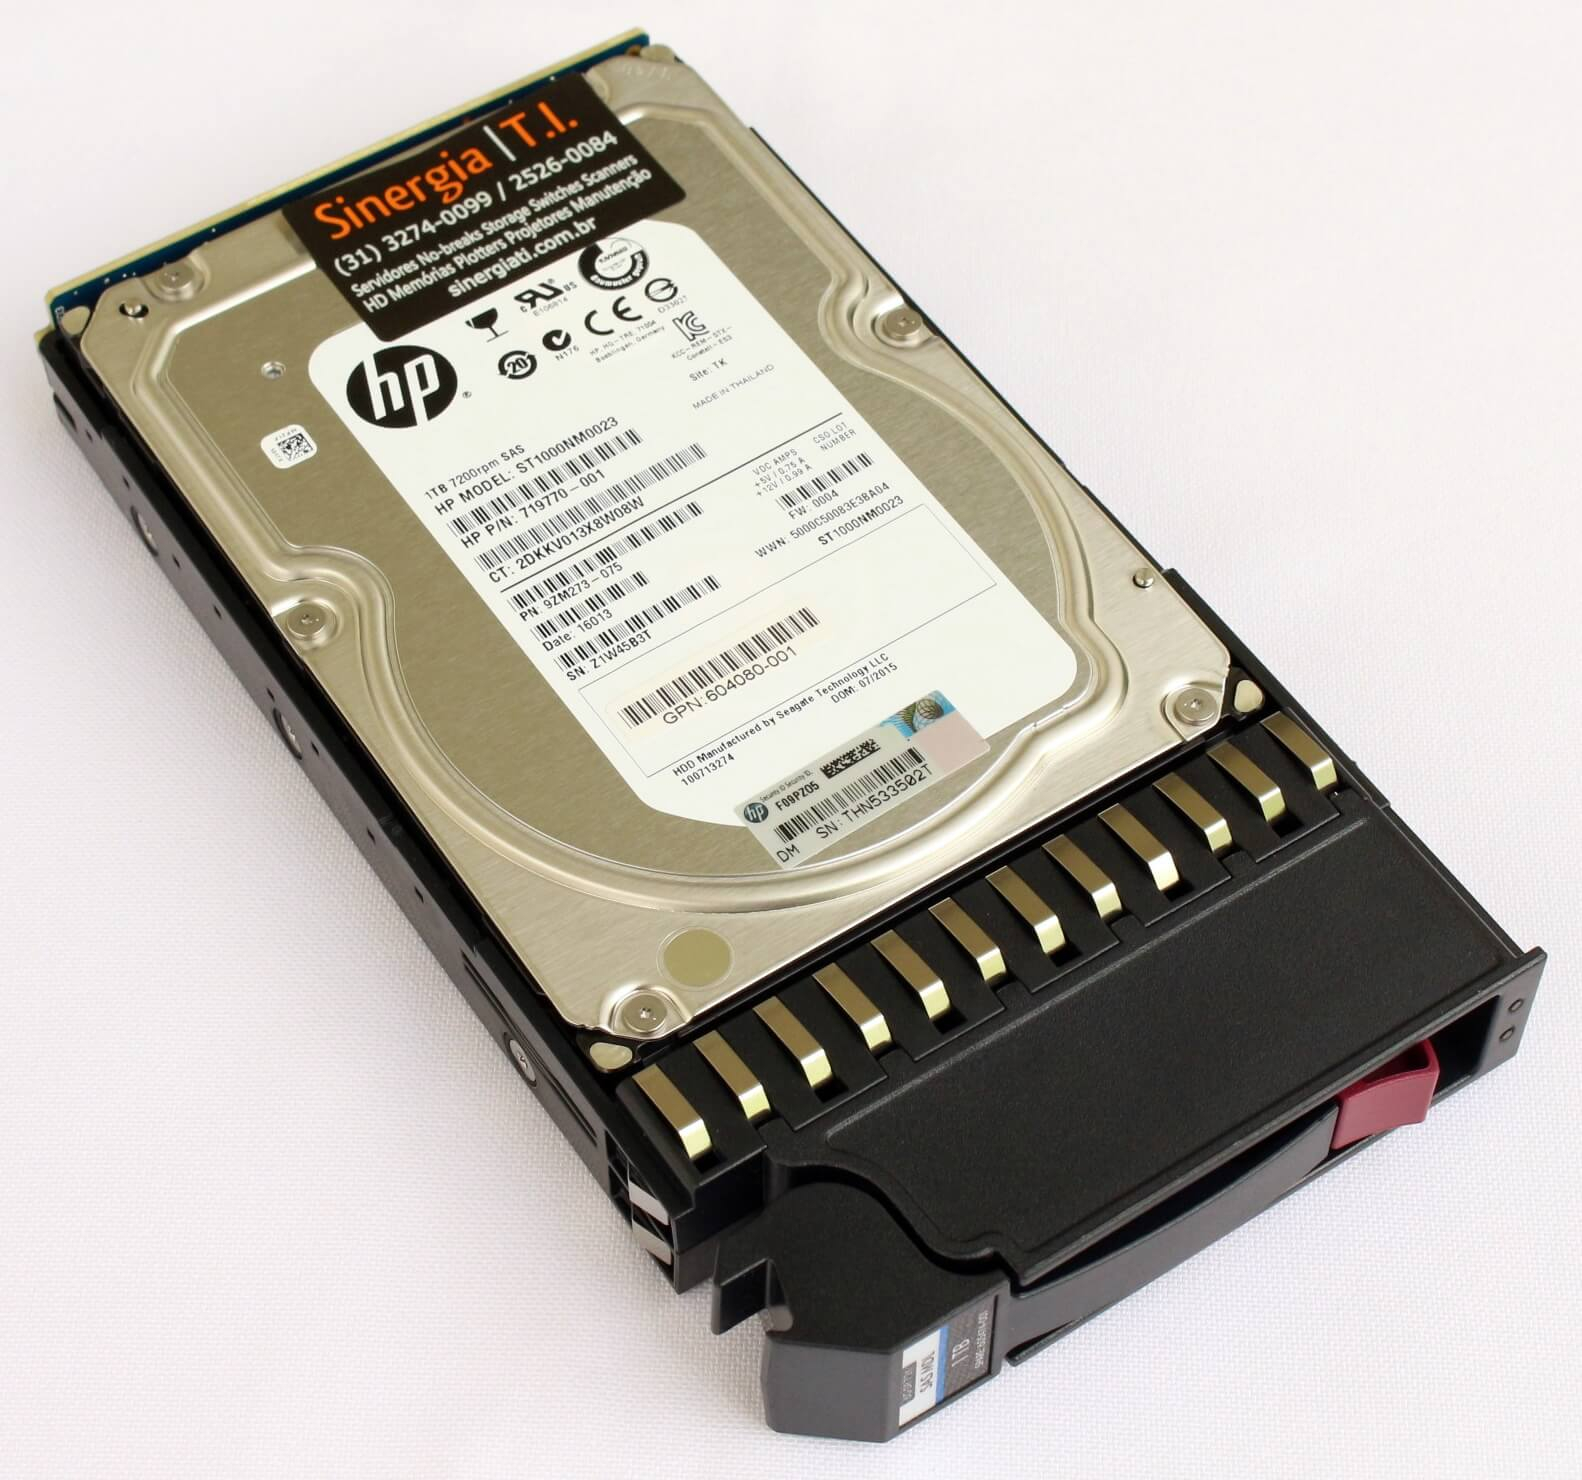 "PN: 9ZM273-075 HD HP 1TB SAS 6Gb/s Enterprise 7.2K LFF Hot-Plug 3,5"" Storage P2000 G3 MSA2312fc MSA2000 P/N inside"